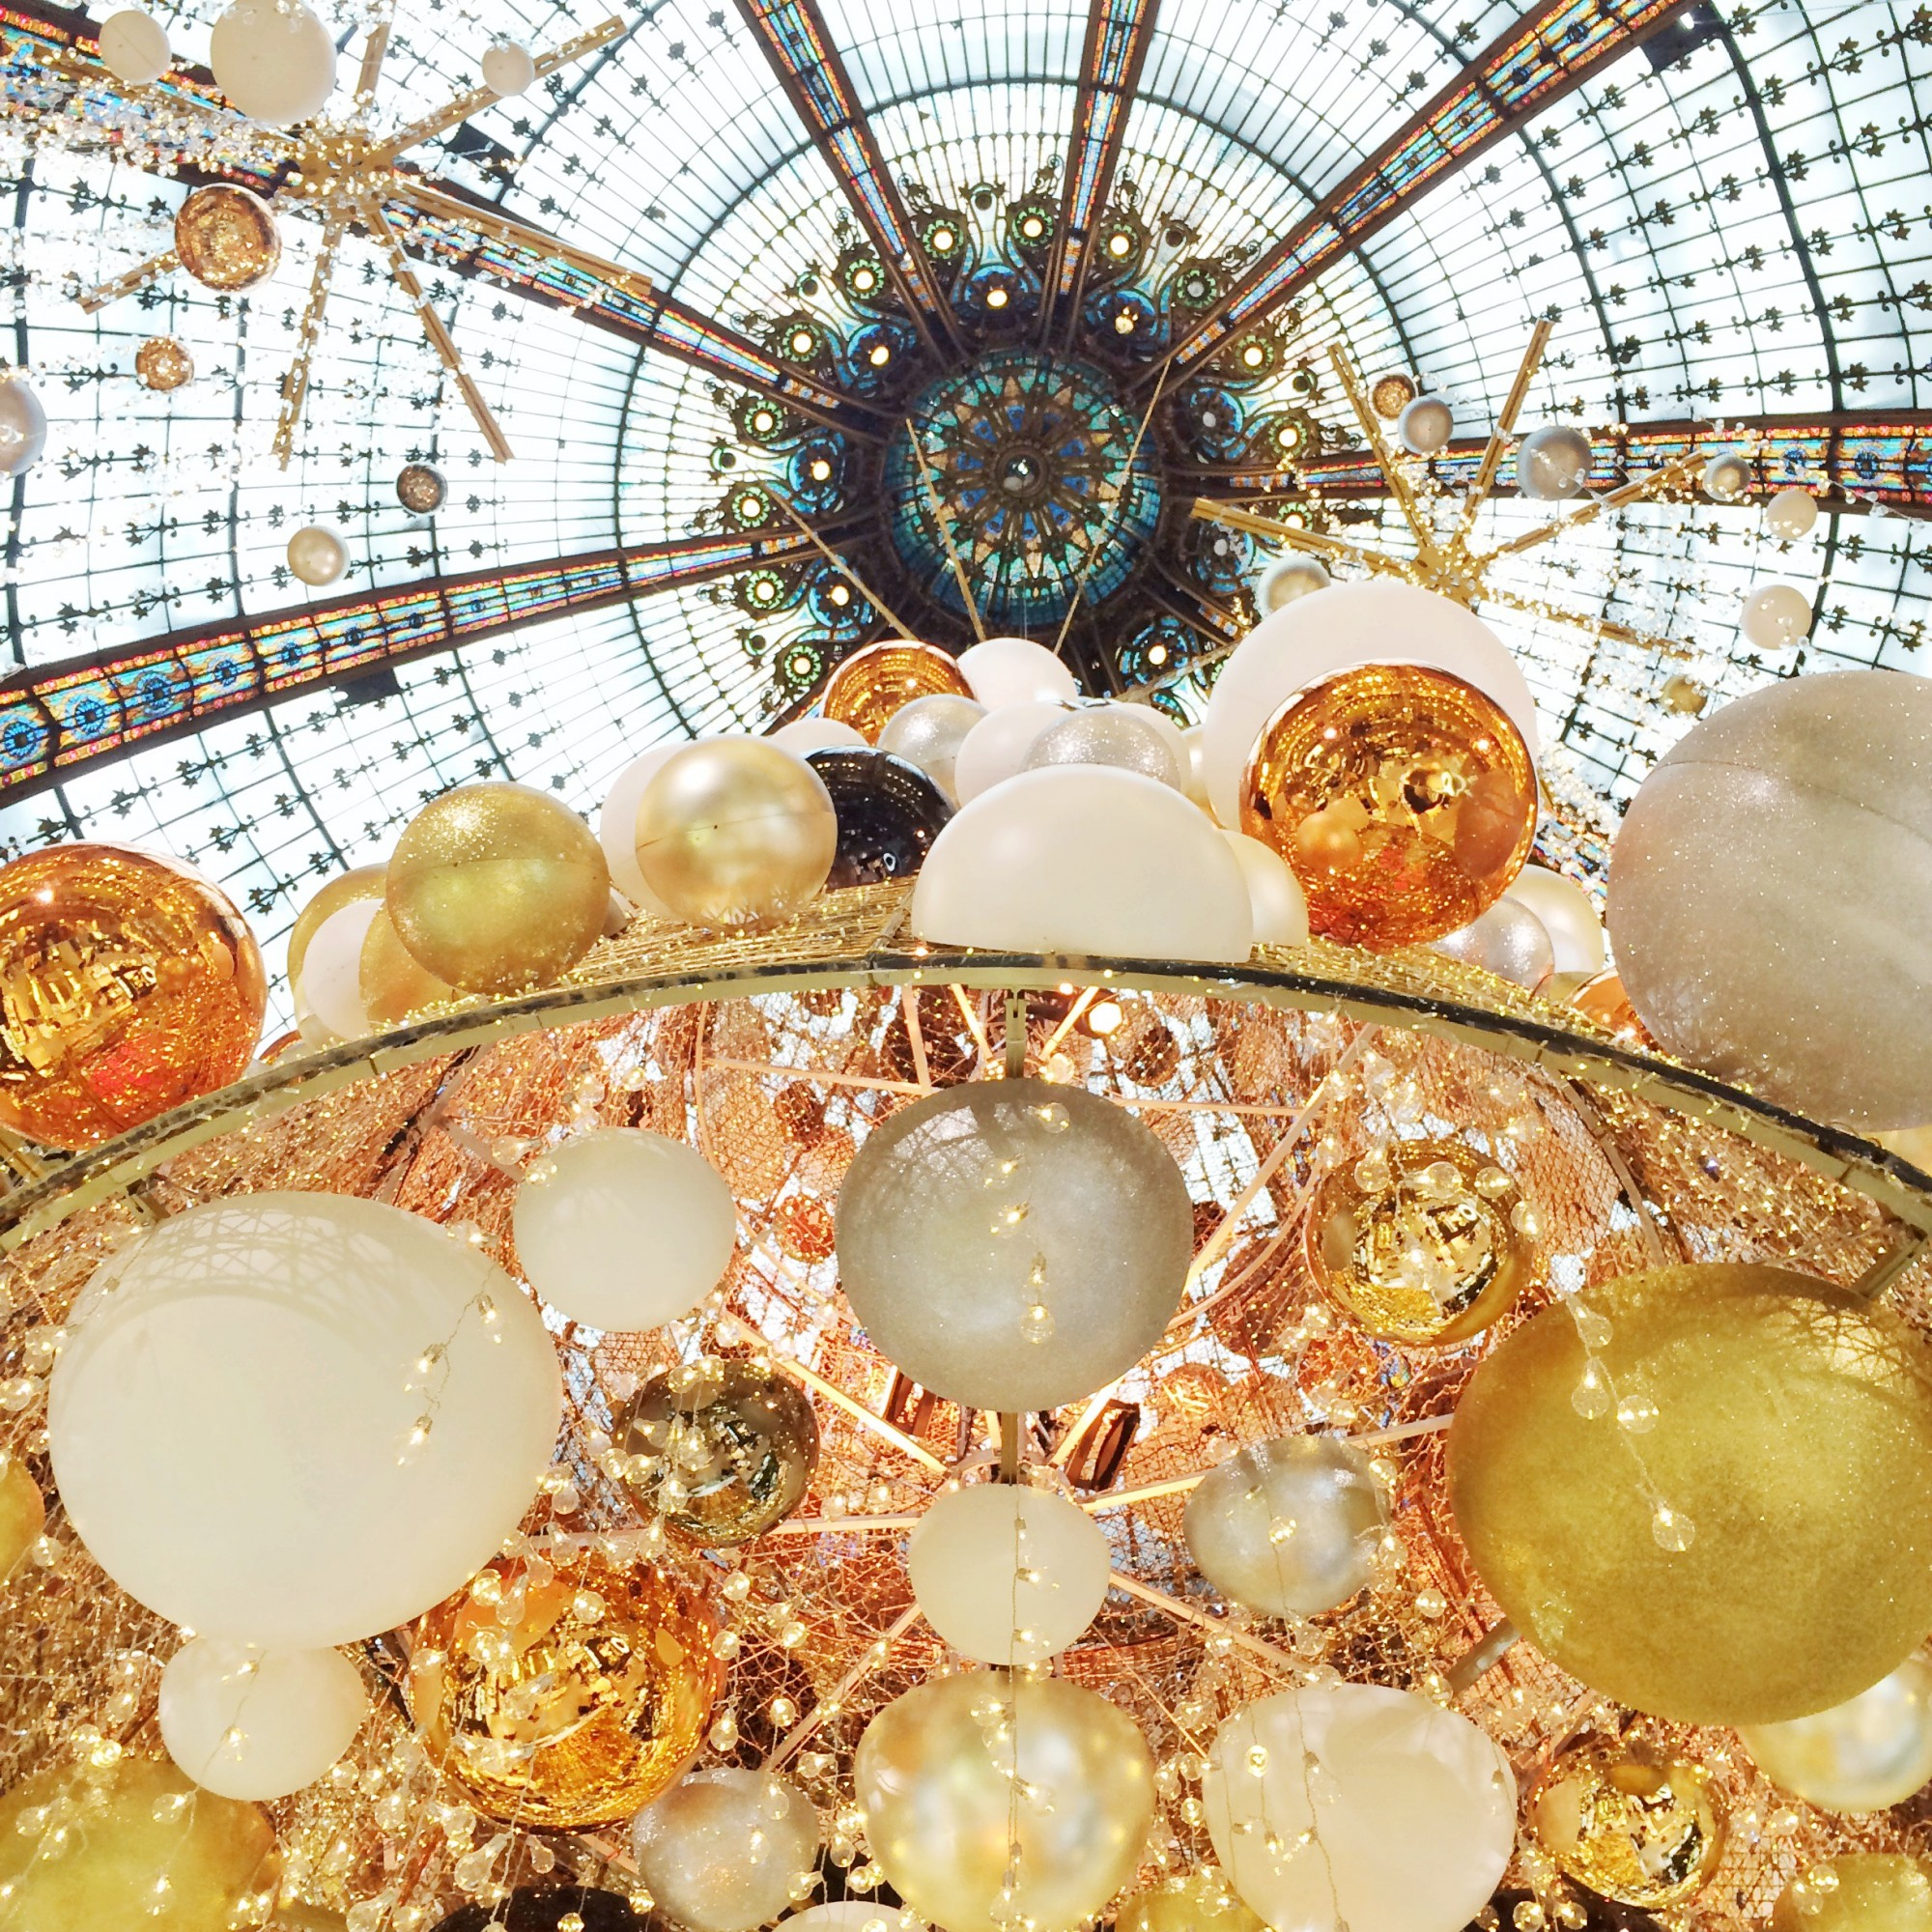 Looking up at the 2015 Christmas decor at Galeries Lafayette. Interested in an internship with HiP Paris Blog? Learn more at http://haveninparis.com/careers.php.